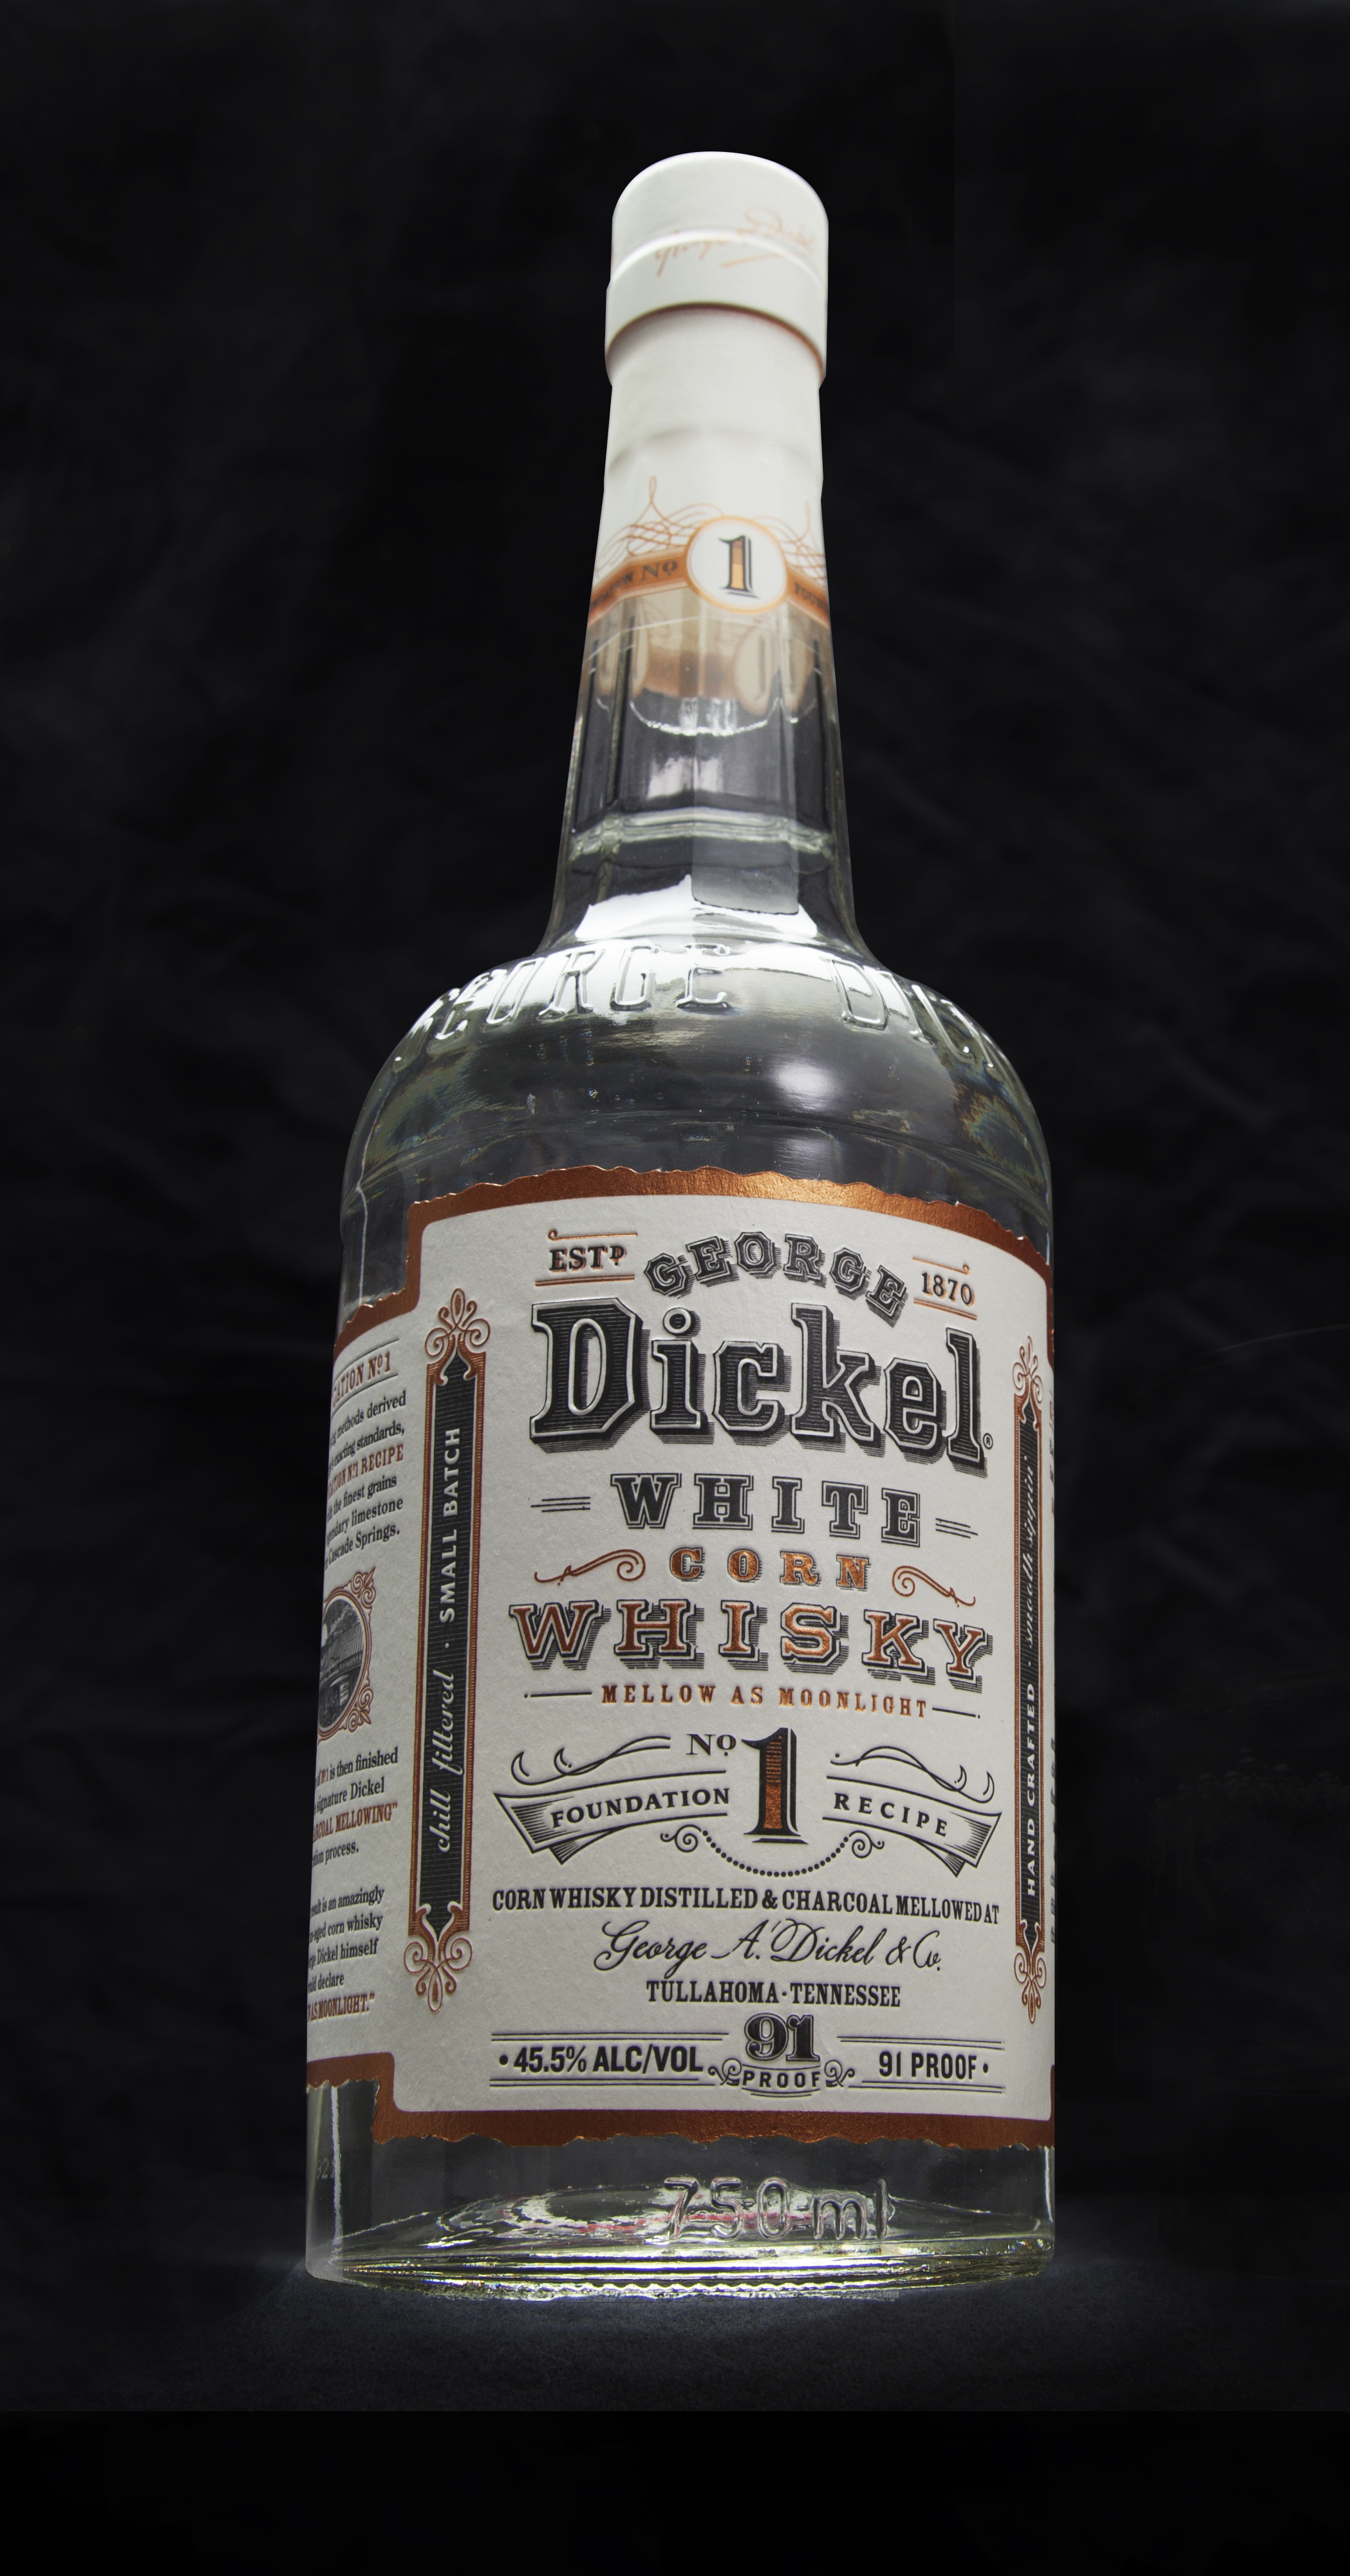 Review: George Dickel White Whisky Foundation No. 1 ...